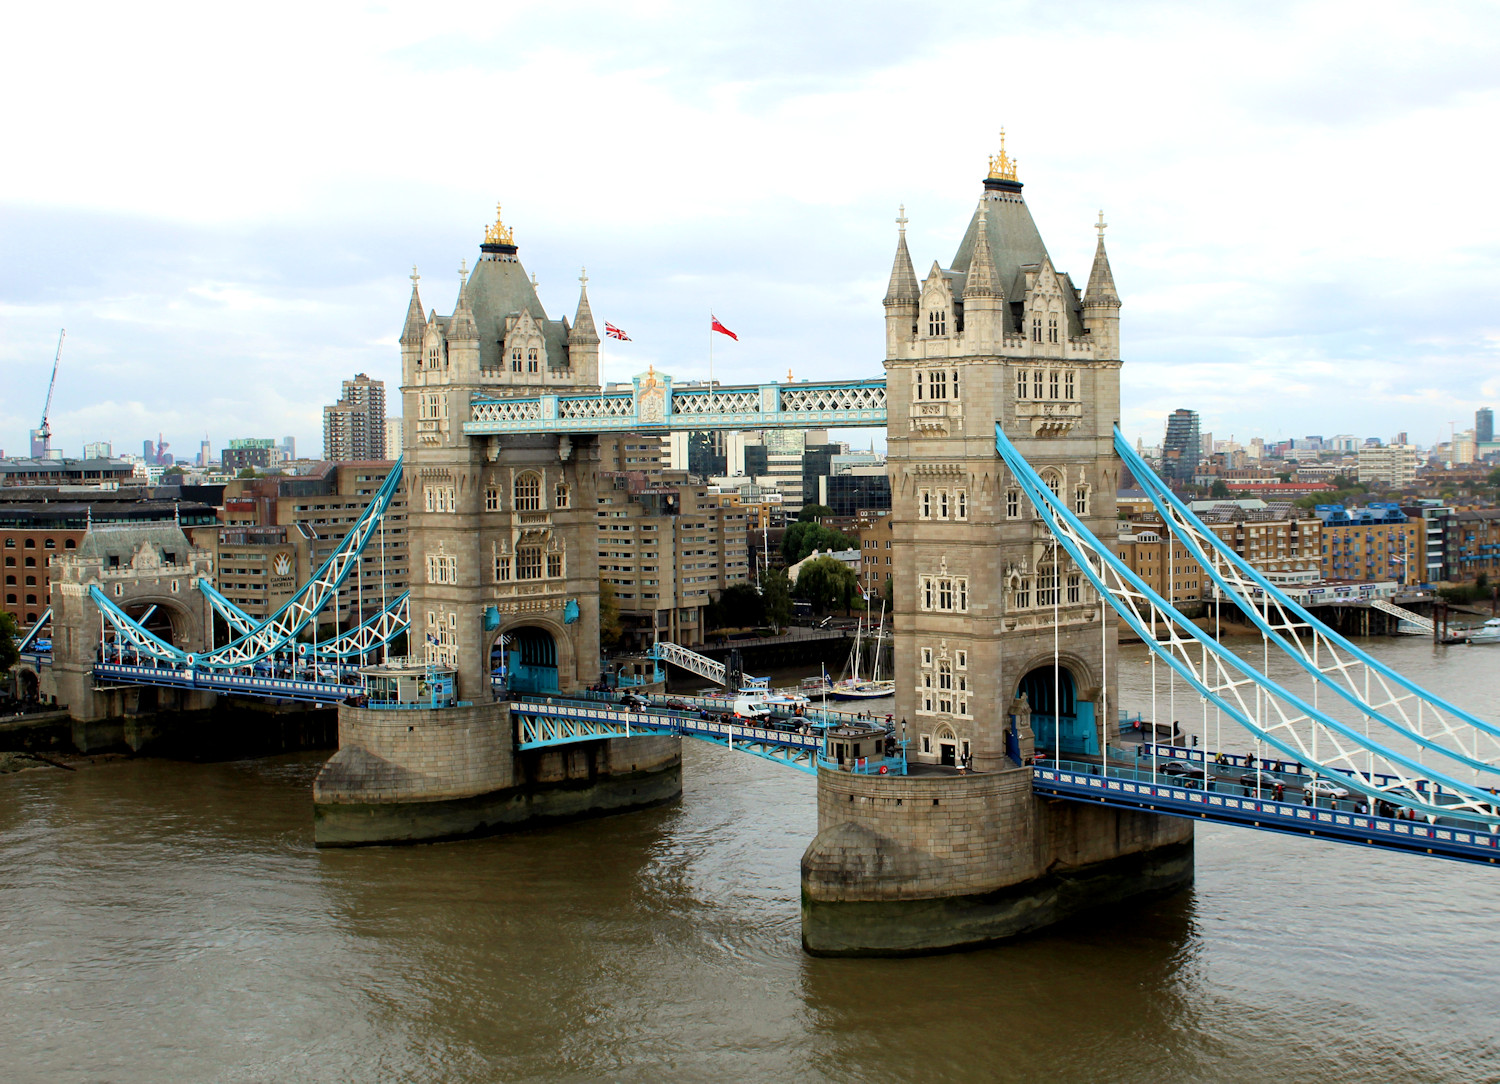 The insider's guide to London - Tower Bridge